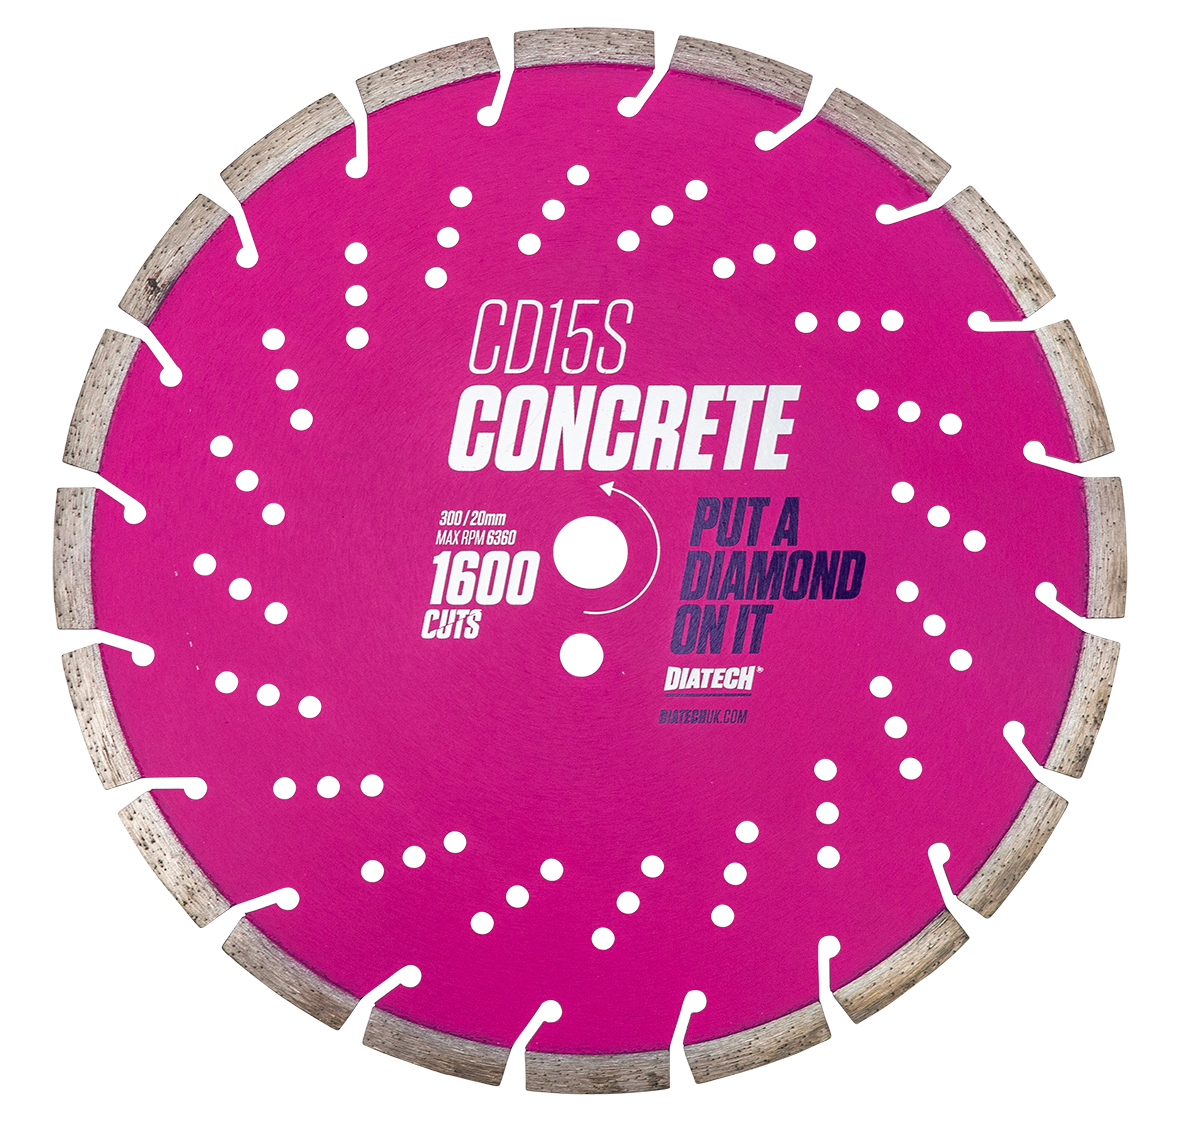 Cutting Discs For Concrete CD15S